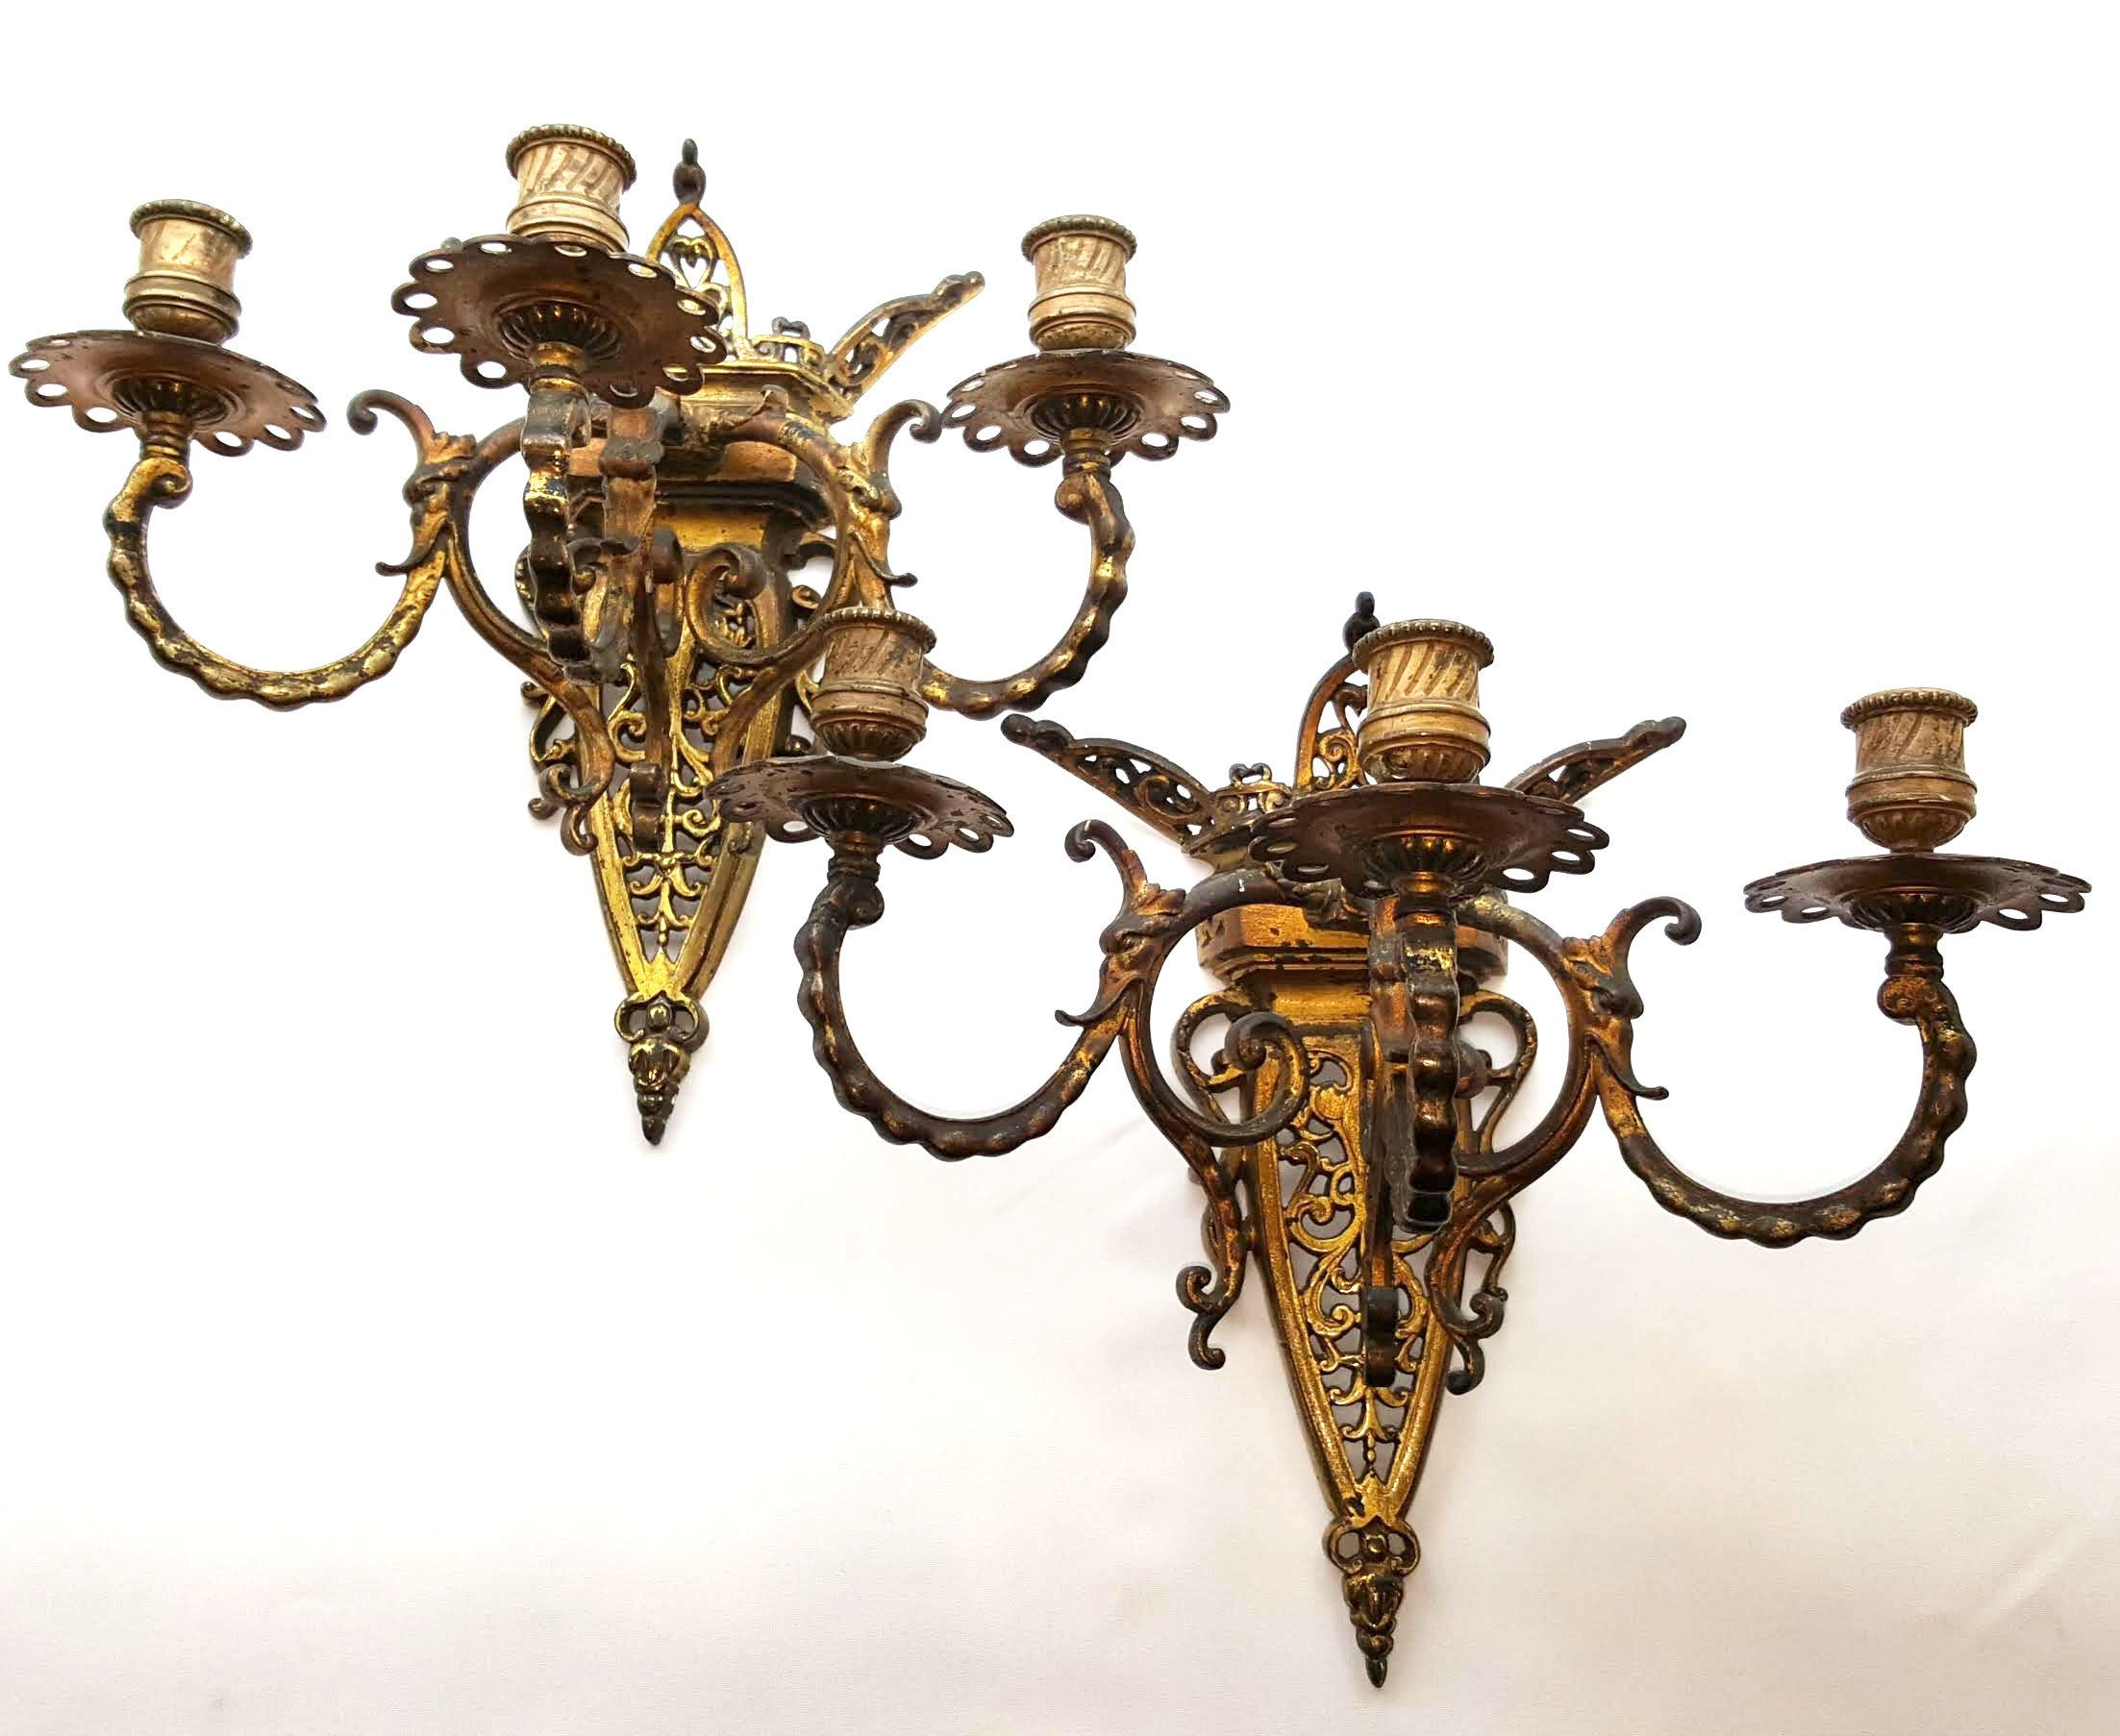 19th Century Pair Gilt Brass Wall Candle Sconces Antique Gothic Style 3 Arm Ormolu Decorative Lights Possibly French Interior Design Wall Candles Candle Wall Sconces Candle Sconces